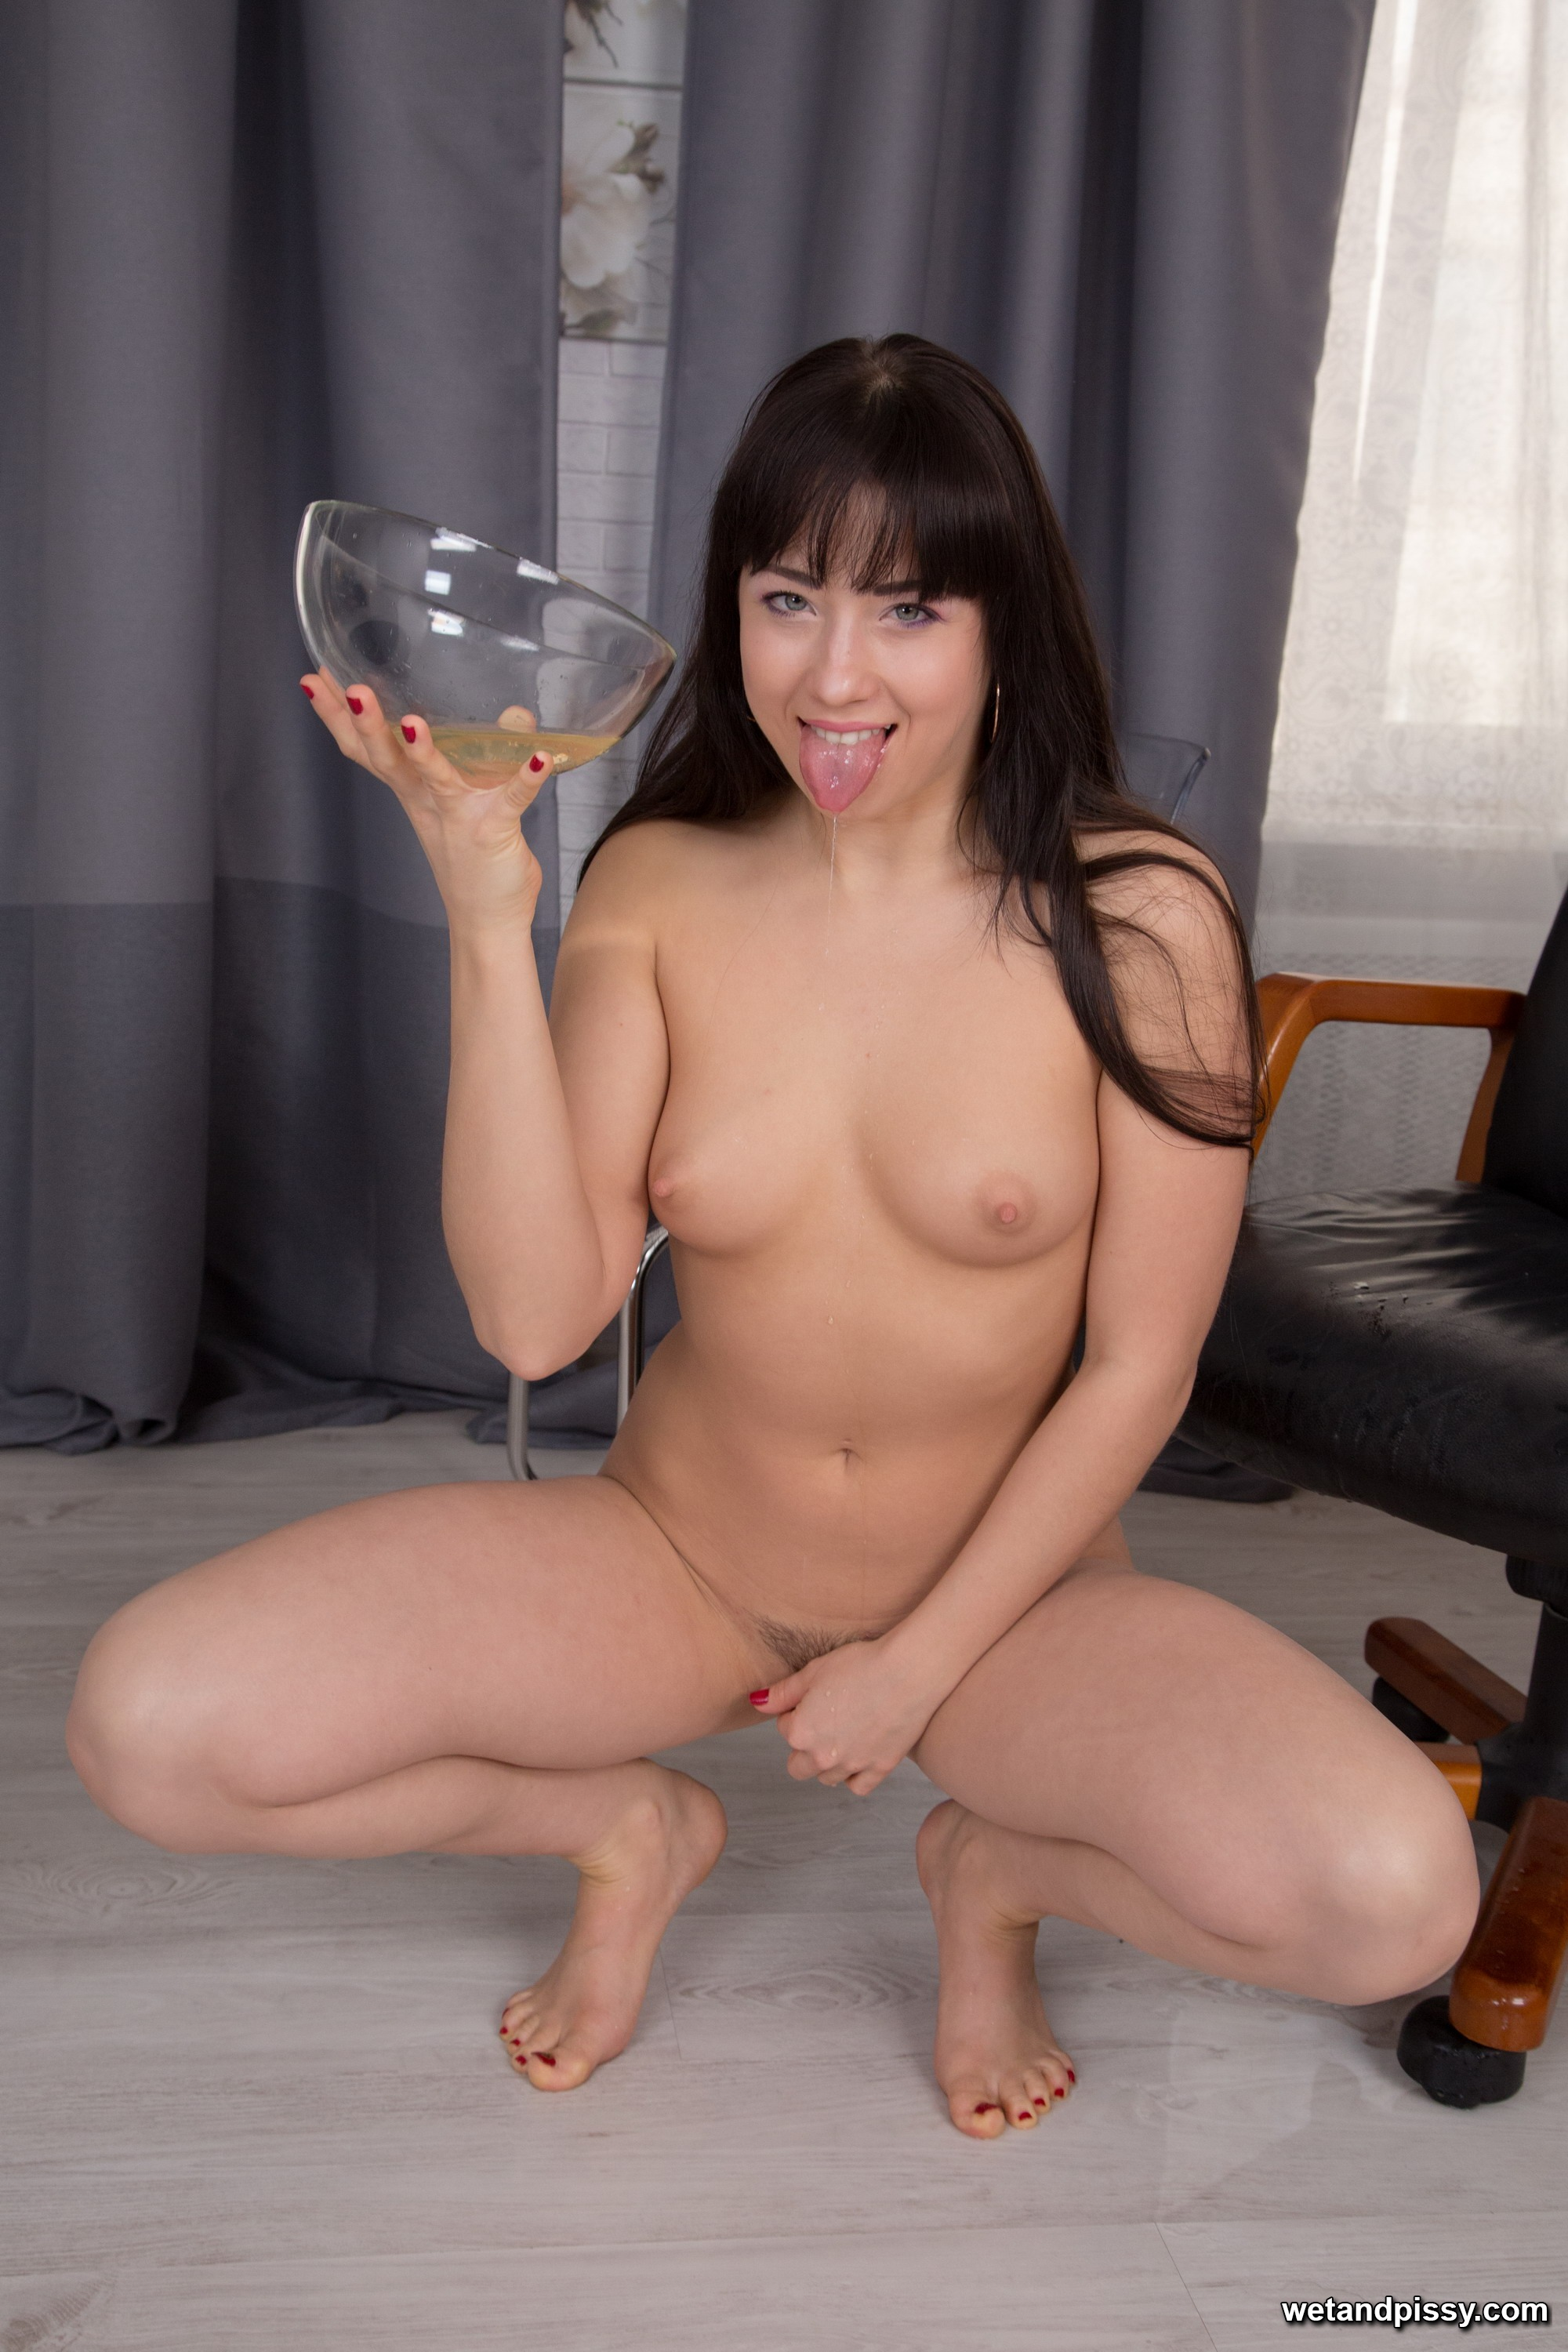 Taissia - Wet and Pissy 98028